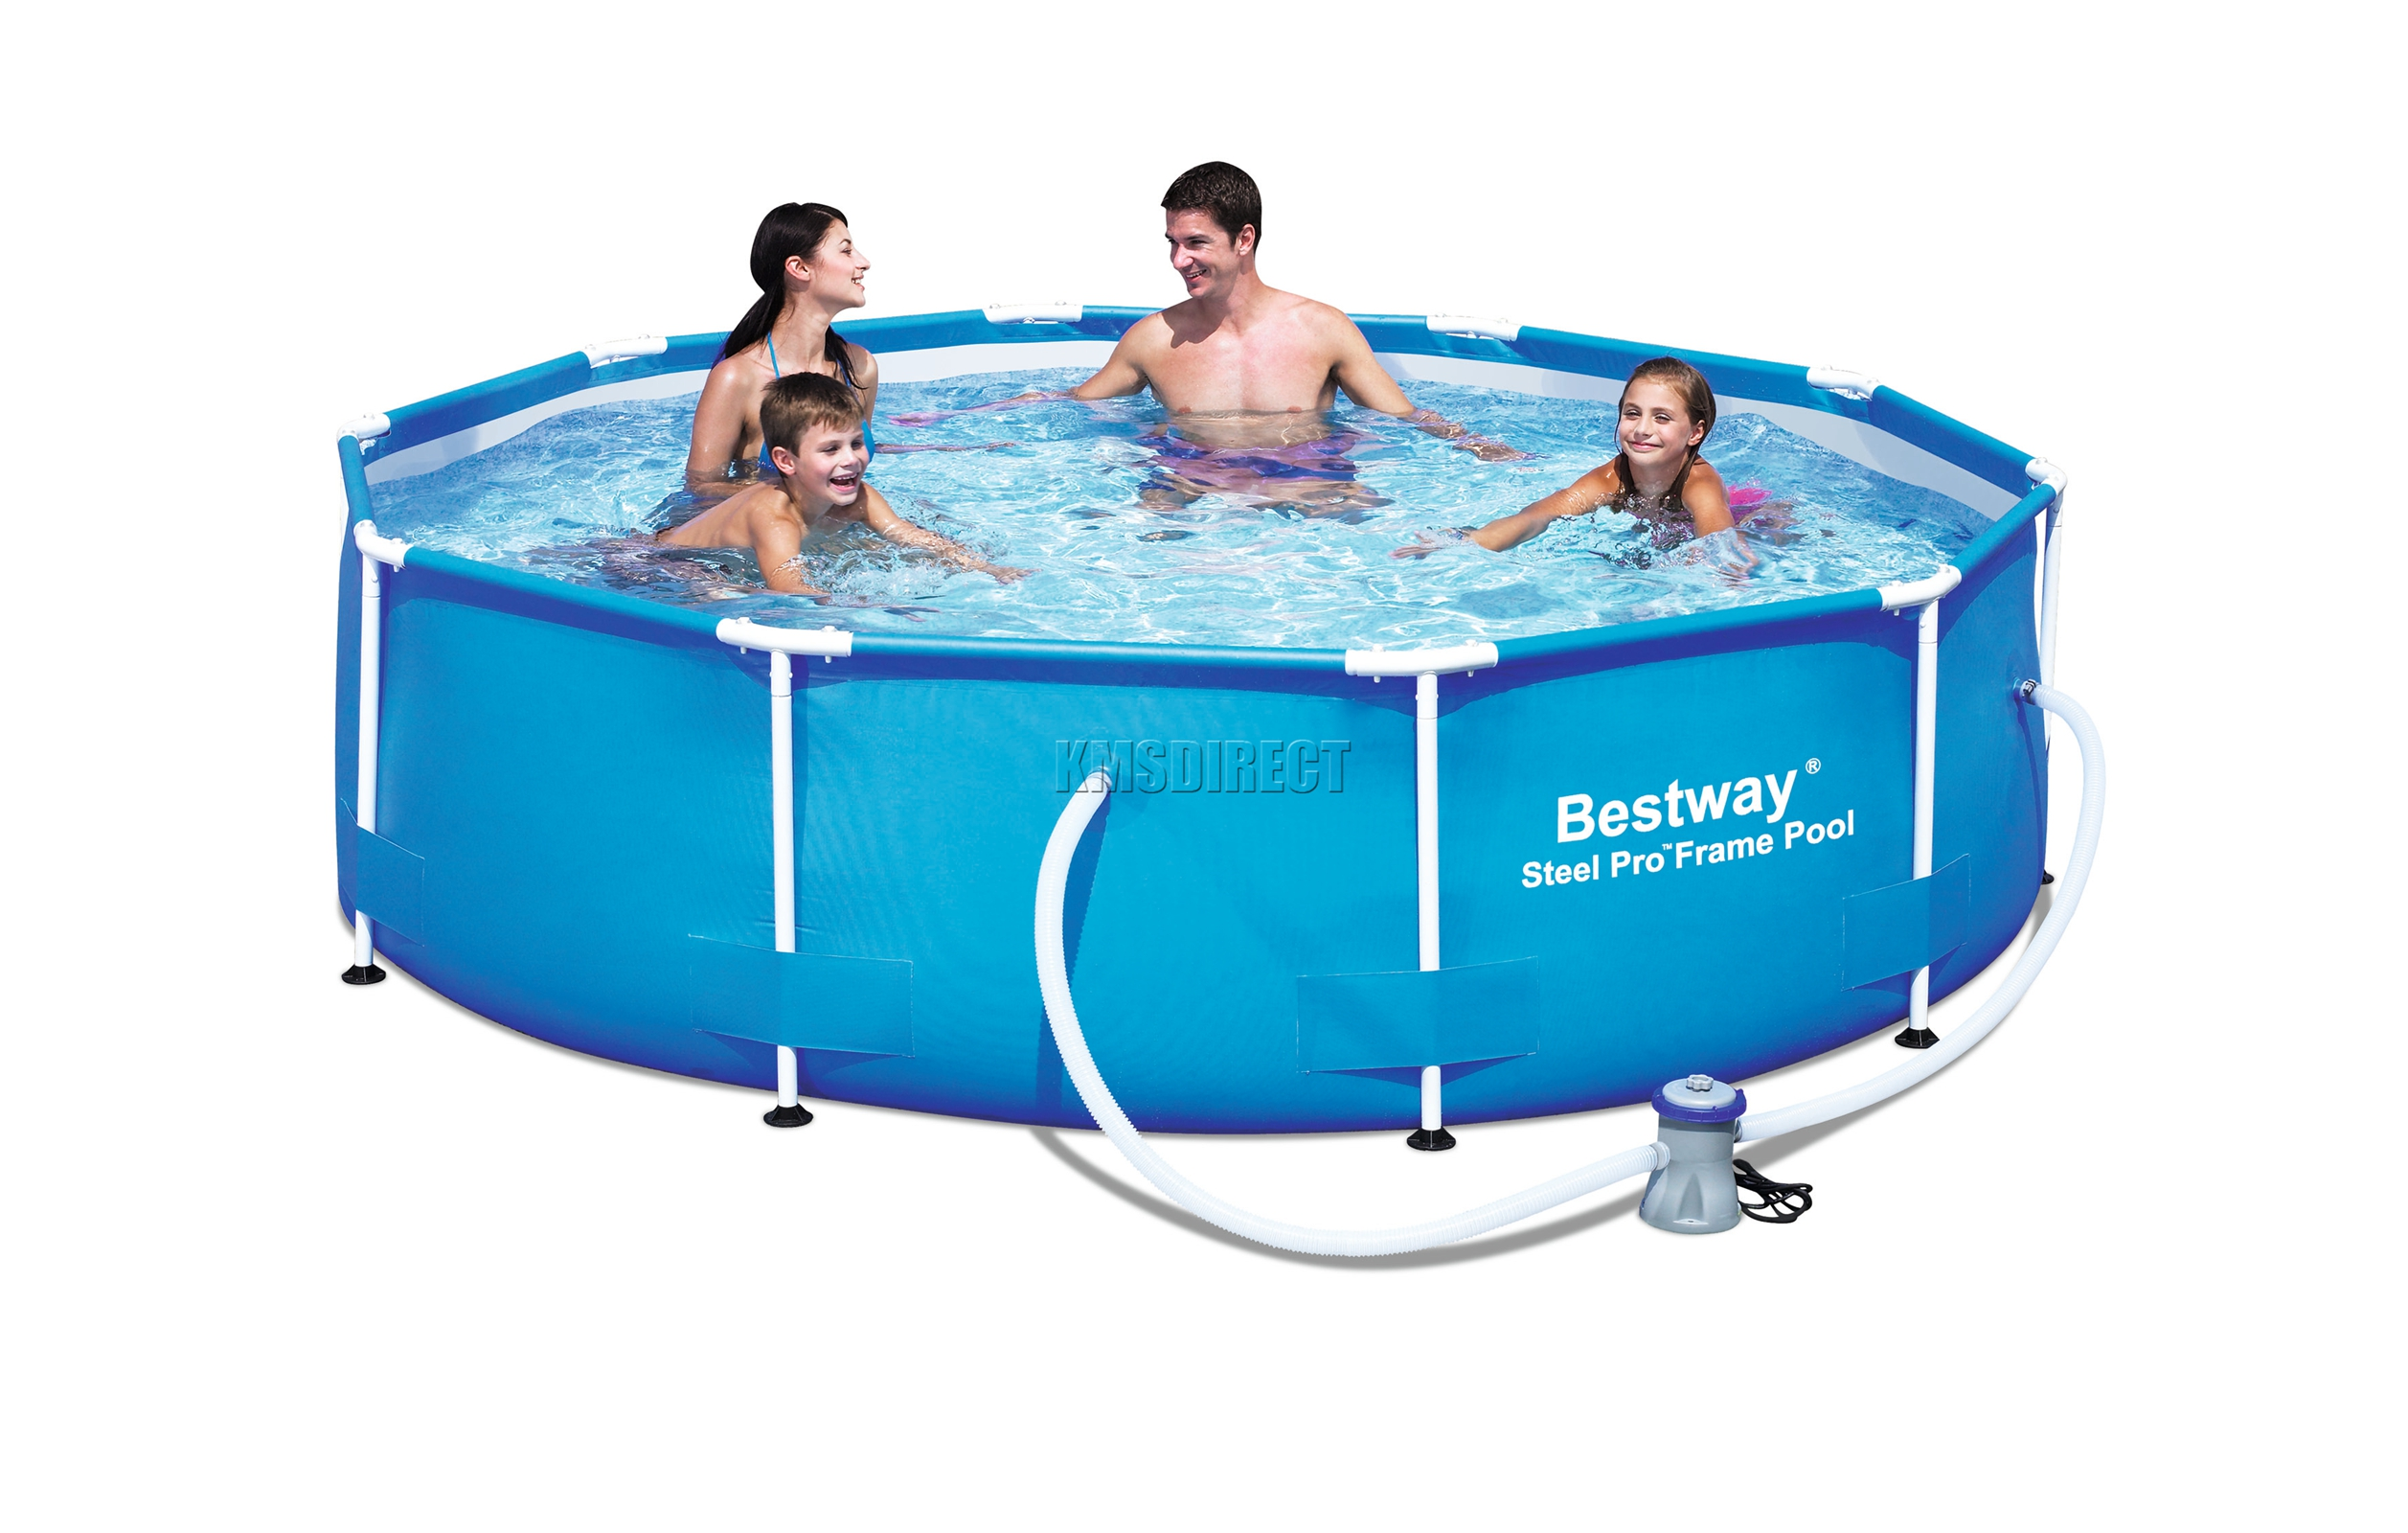 Bestway steel pro frame swimming pool set round 10ft - Bestway steel frame swimming pool ...